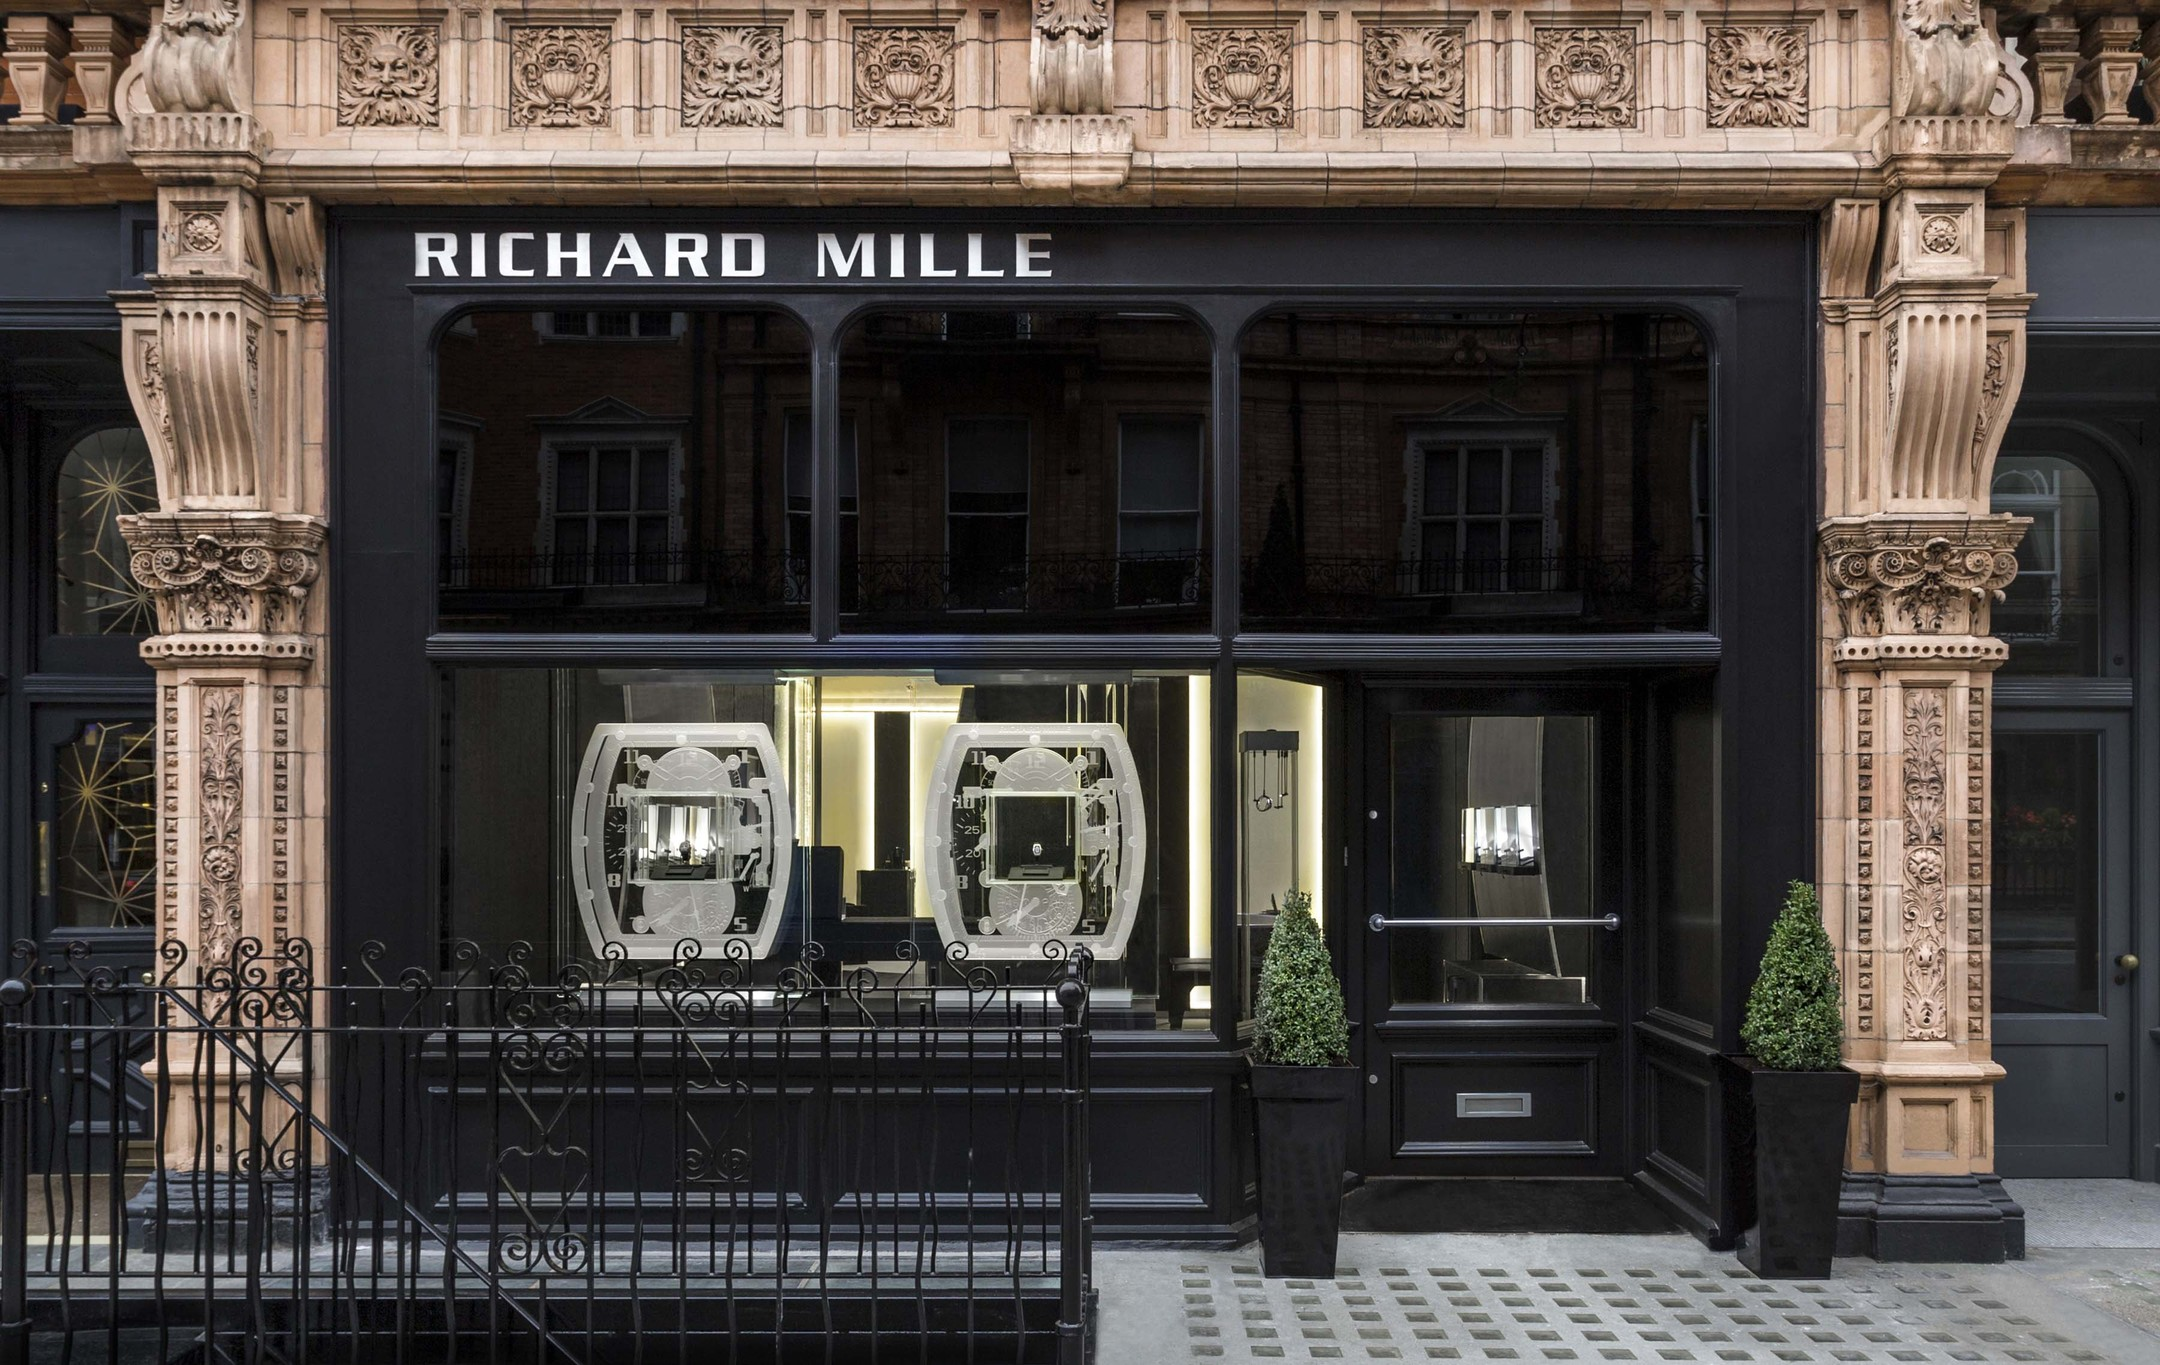 The facade of Richard Mille's new boutique in the exclusive Mayfair district of London, which is fast establishing itself as the new Mecca for high-end watch and jewellery brands.